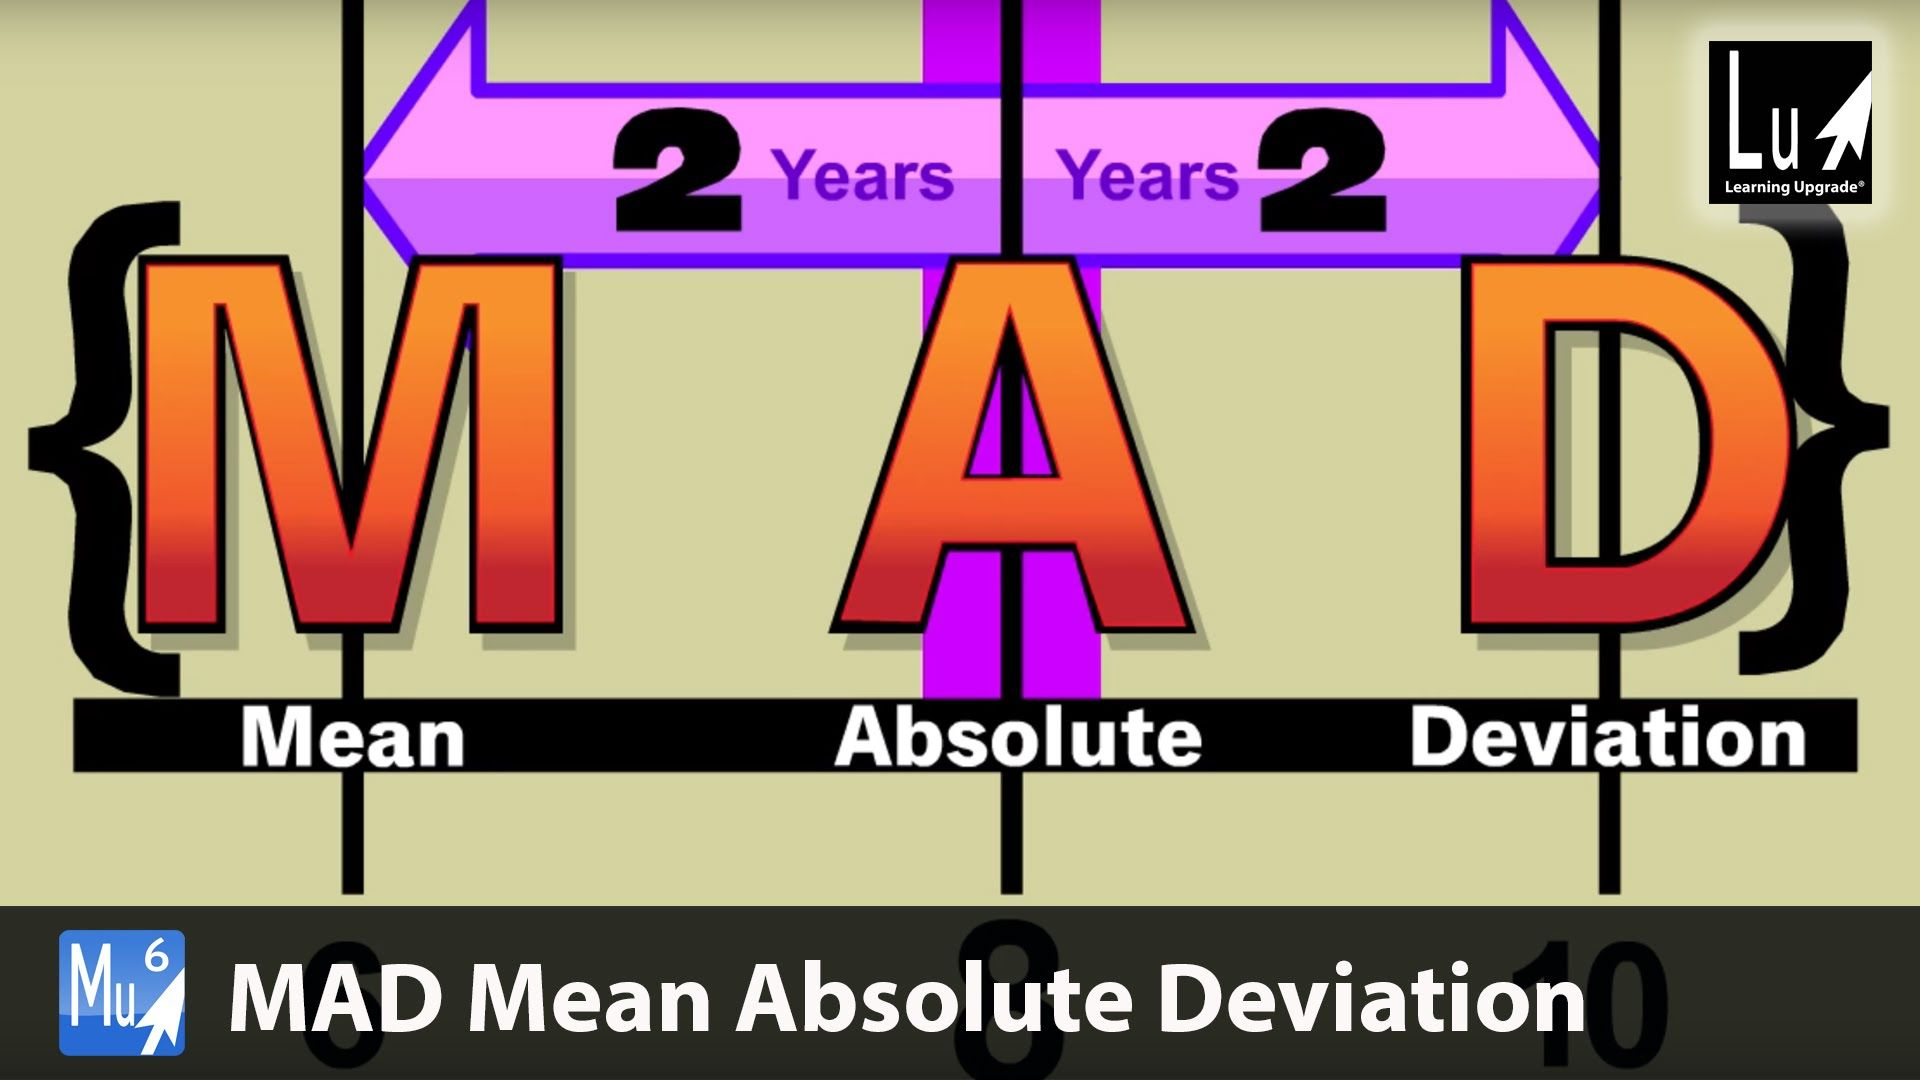 Mad Mean Absolute Deviation Song Learn Statistics Learning Upgrade